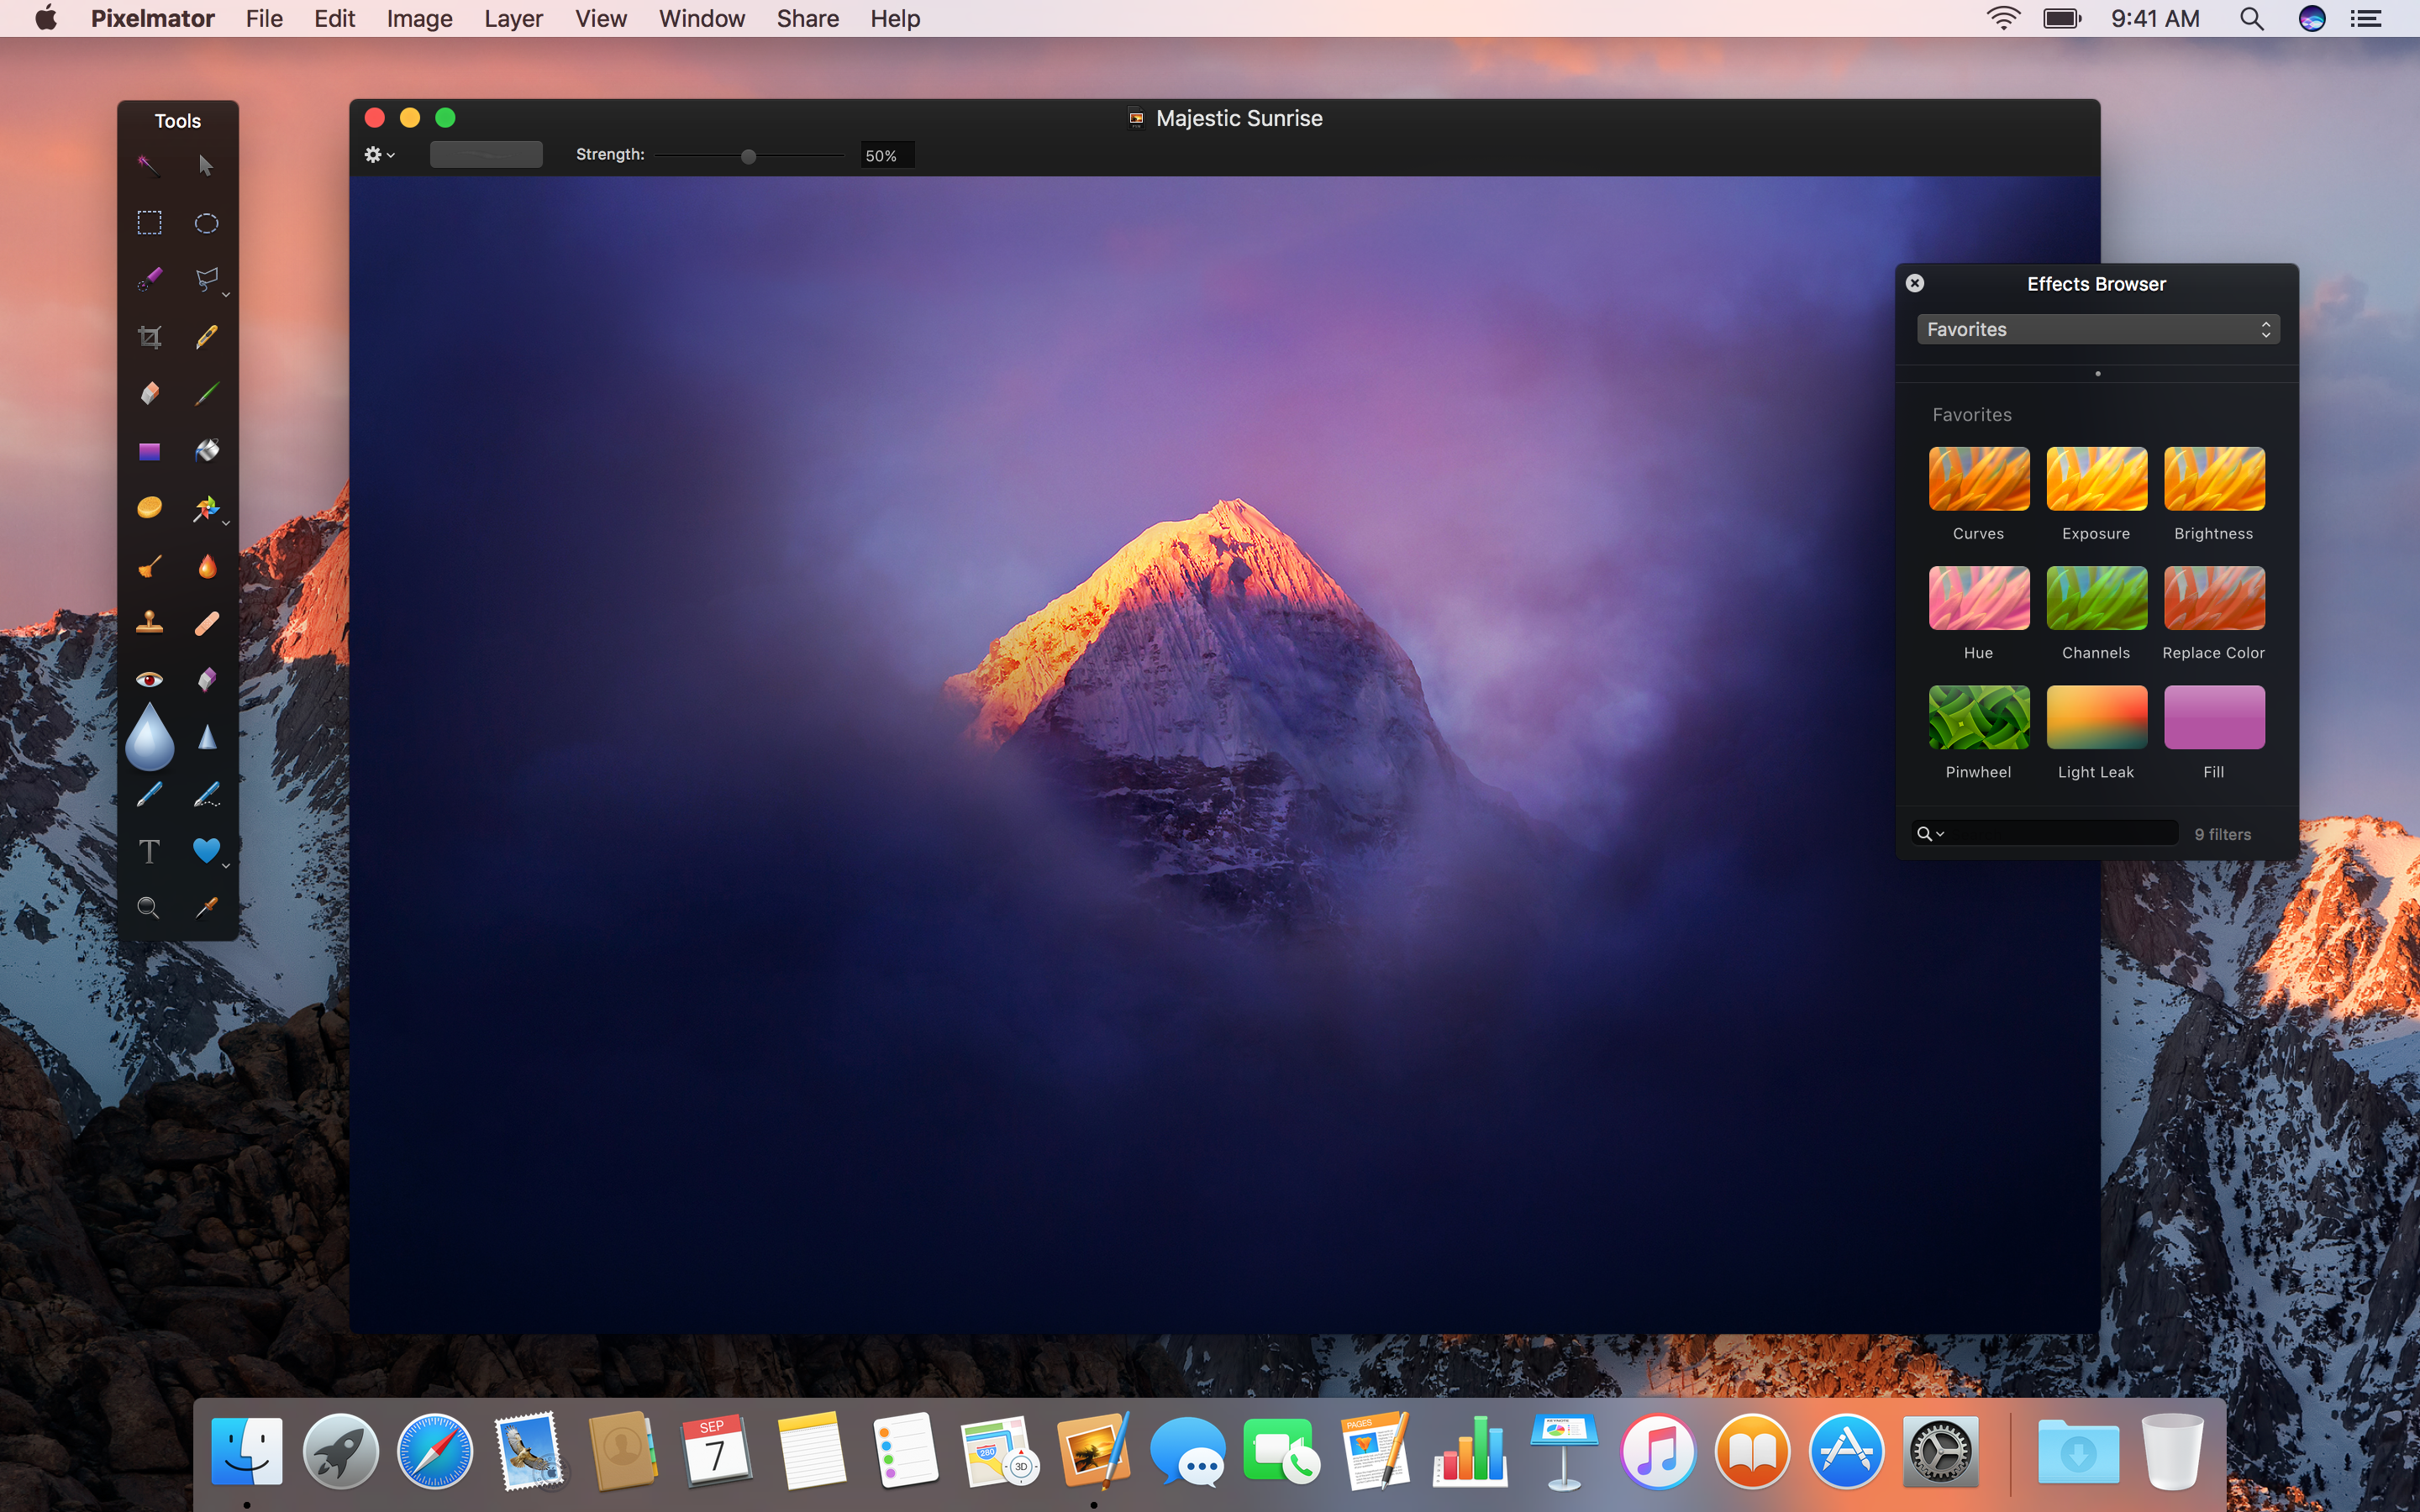 Pixelmator 3.6 Cordillera adds support for macOS Sierra & the Touch Bar Image